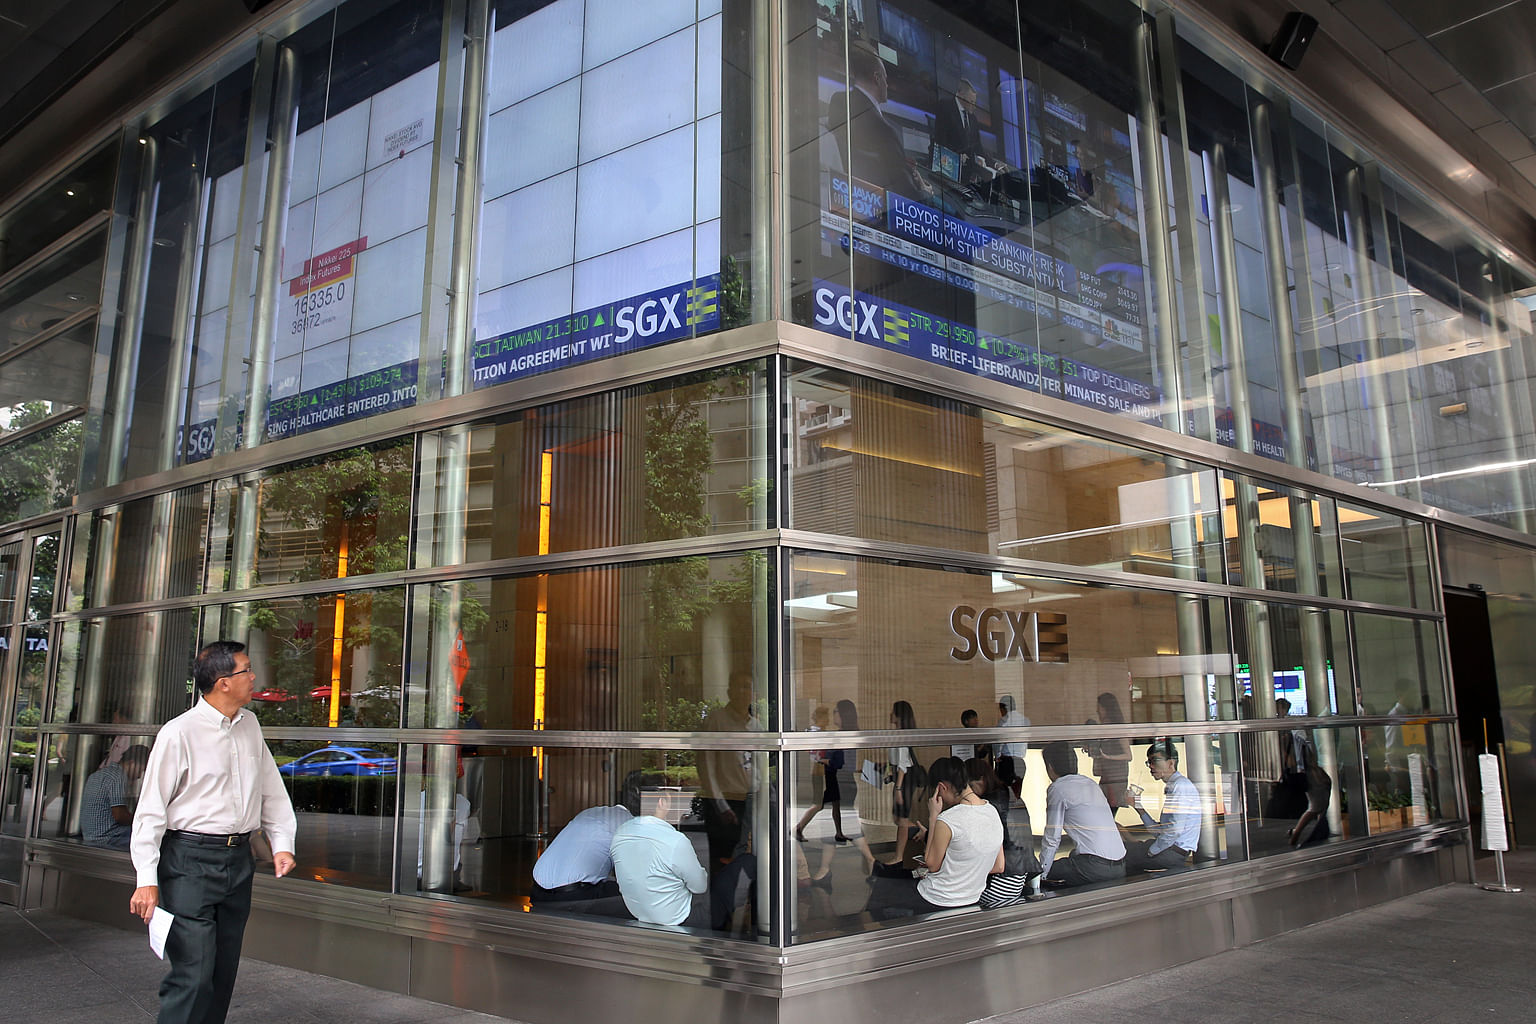 The SGX Centre in Shenton Way. Some brokers are worried about the risk of more trading disruptions when the bourse operator unveils its Post-Trade system.